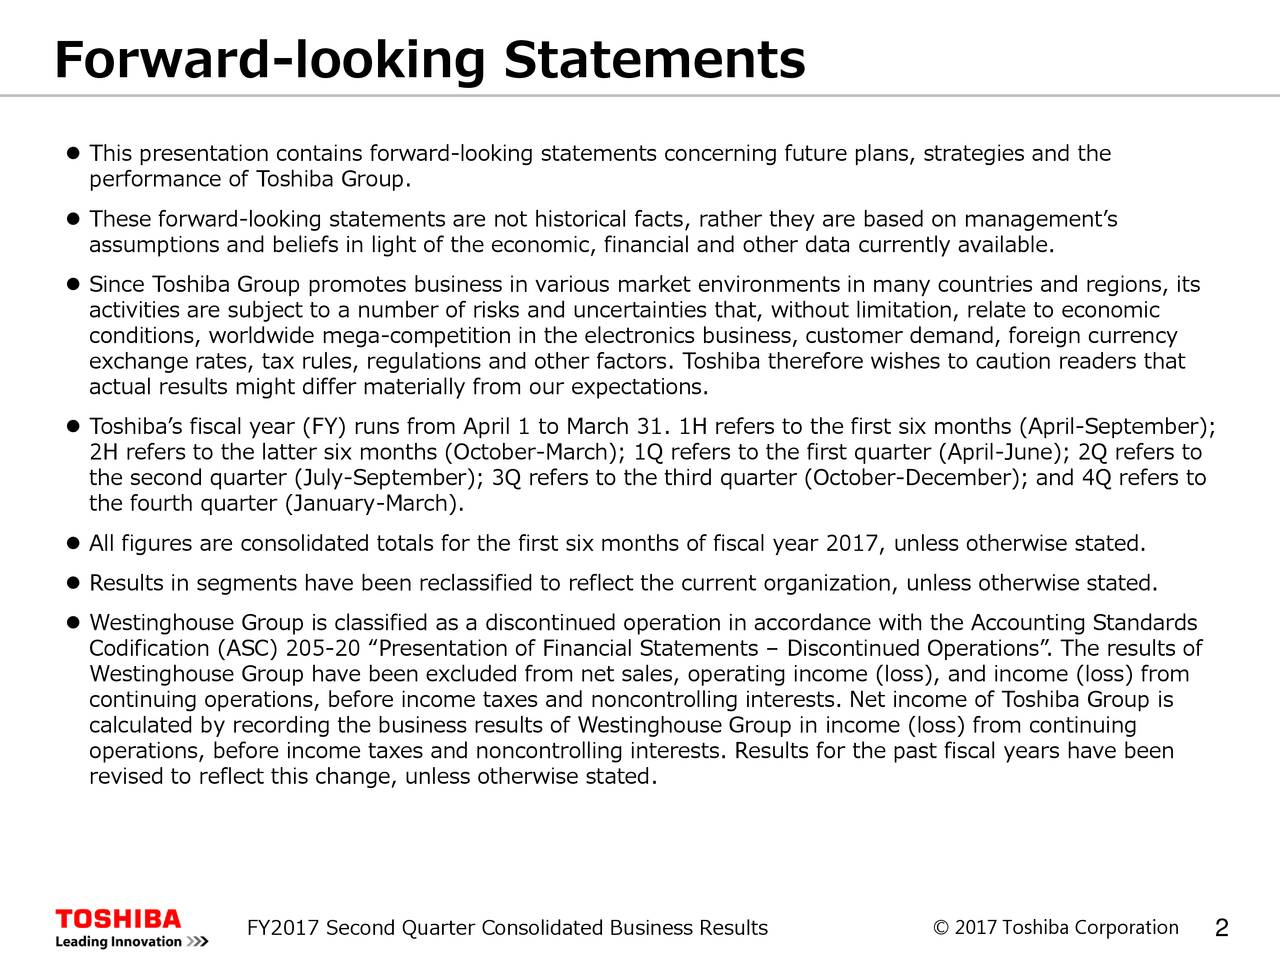 """ This presentation contains forward-looking statements concerning future plans, strategies and the performance of Toshiba Group.  These forward-looking statements are not historical facts, rather they are based on management's assumptions and beliefs in light of the economic, financial and other data currently available.  Since Toshiba Group promotes business in various market environments in many countries and regions, its activities are subject to a number of risks and uncertainties that, without limitation, relate to economic conditions, worldwide mega-competition in the electronics business, customer demand, foreign currency exchange rates, tax rules, regulations and other factors. Toshiba therefore wishes to caution readers that actual results might differ materially from our expectations.  Toshiba's fiscal year (FY) runs from April 1 to March 31. 1H refers to the first six months (April-September); 2H refers to the latter six months (October-March); 1Q refers to the first quarter (April-June); 2Q refers to the second quarter (July-September); 3Q refers to the third quarter (October-December); and 4Q refers to the fourth quarter (January-March).  All figures are consolidated totals for the first six months of fiscal year 2017, unless otherwise stated.  Results in segments have been reclassified to reflect the current organization, unless otherwise stated.  Westinghouse Group is classified as a discontinued operation in accordance with the Accounting Standards Codification (ASC) 205-20 """"Presentation of Financial Statements – Discontinued Operations"""". The results of Westinghouse Group have been excluded from net sales, operating income (loss), and income (loss) from continuing operations, before income taxes and noncontrolling interests. Net income of Toshiba Group is calculated by recording the business results of Westinghouse Group in income (loss) from continuing operations, before income taxes and noncontrolling interests. Results for the past fiscal years ha"""